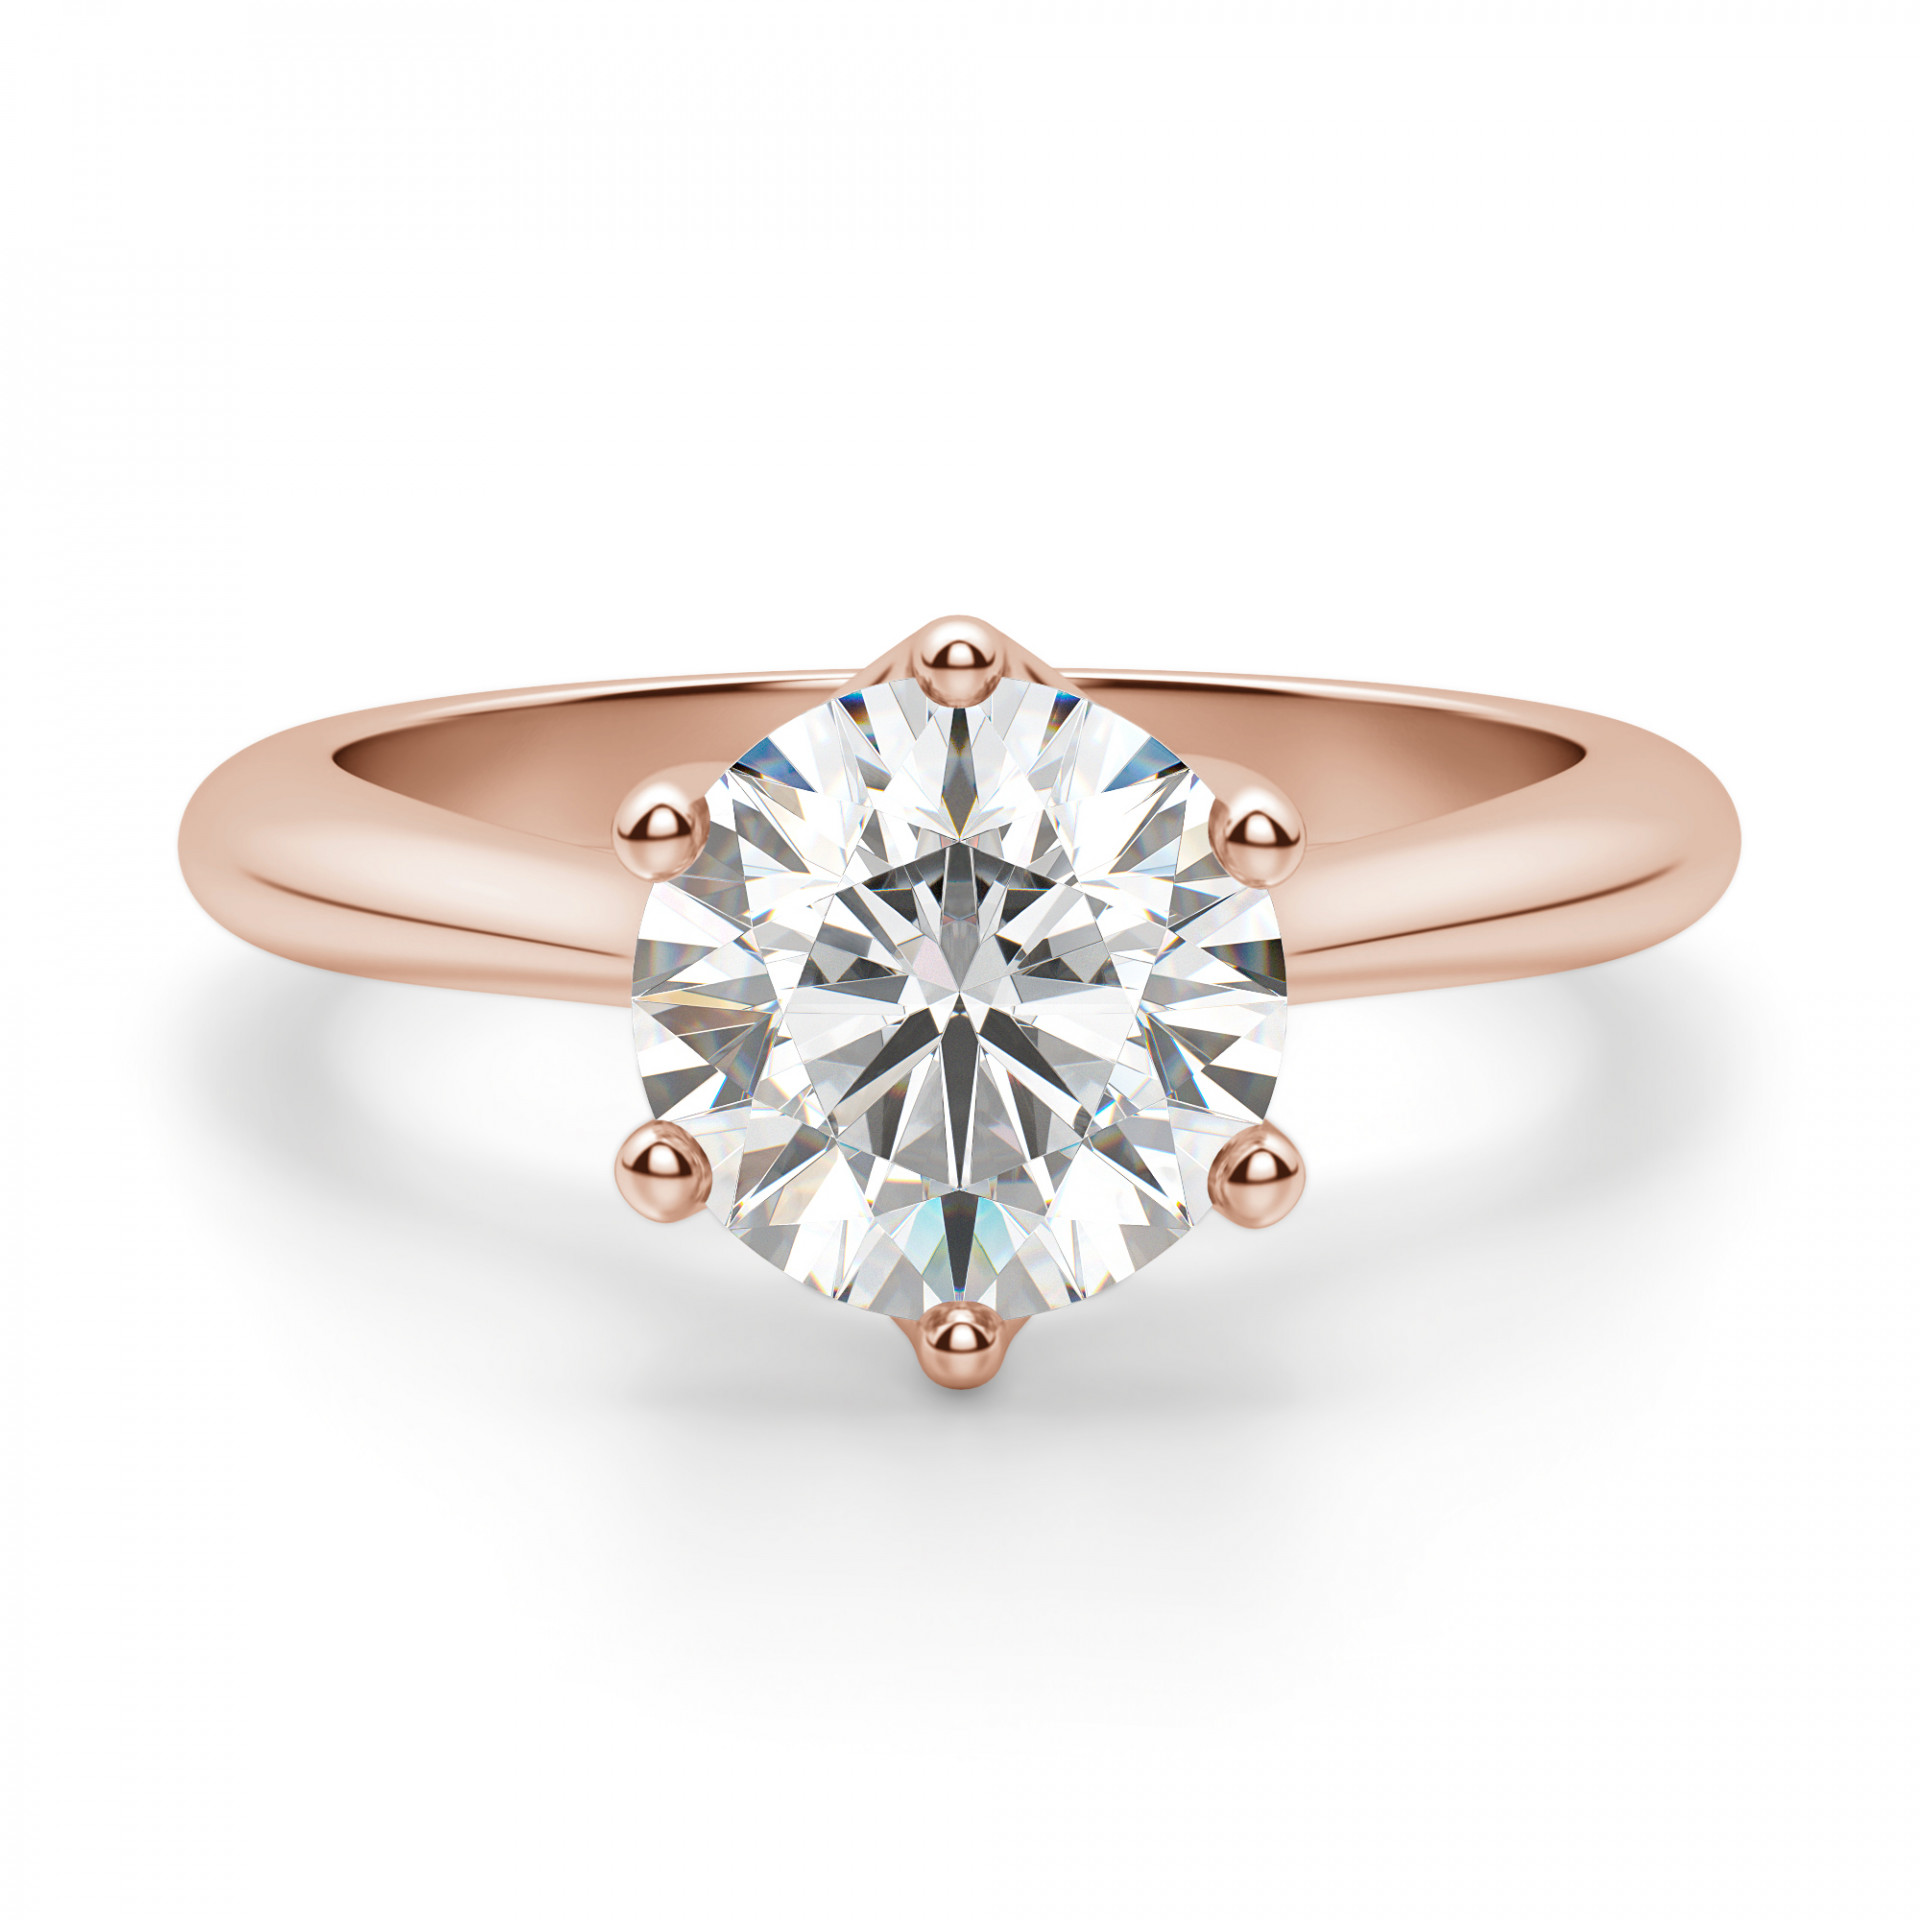 Engagement Rings Round Cut: Bali Classic Round Cut Engagement Ring